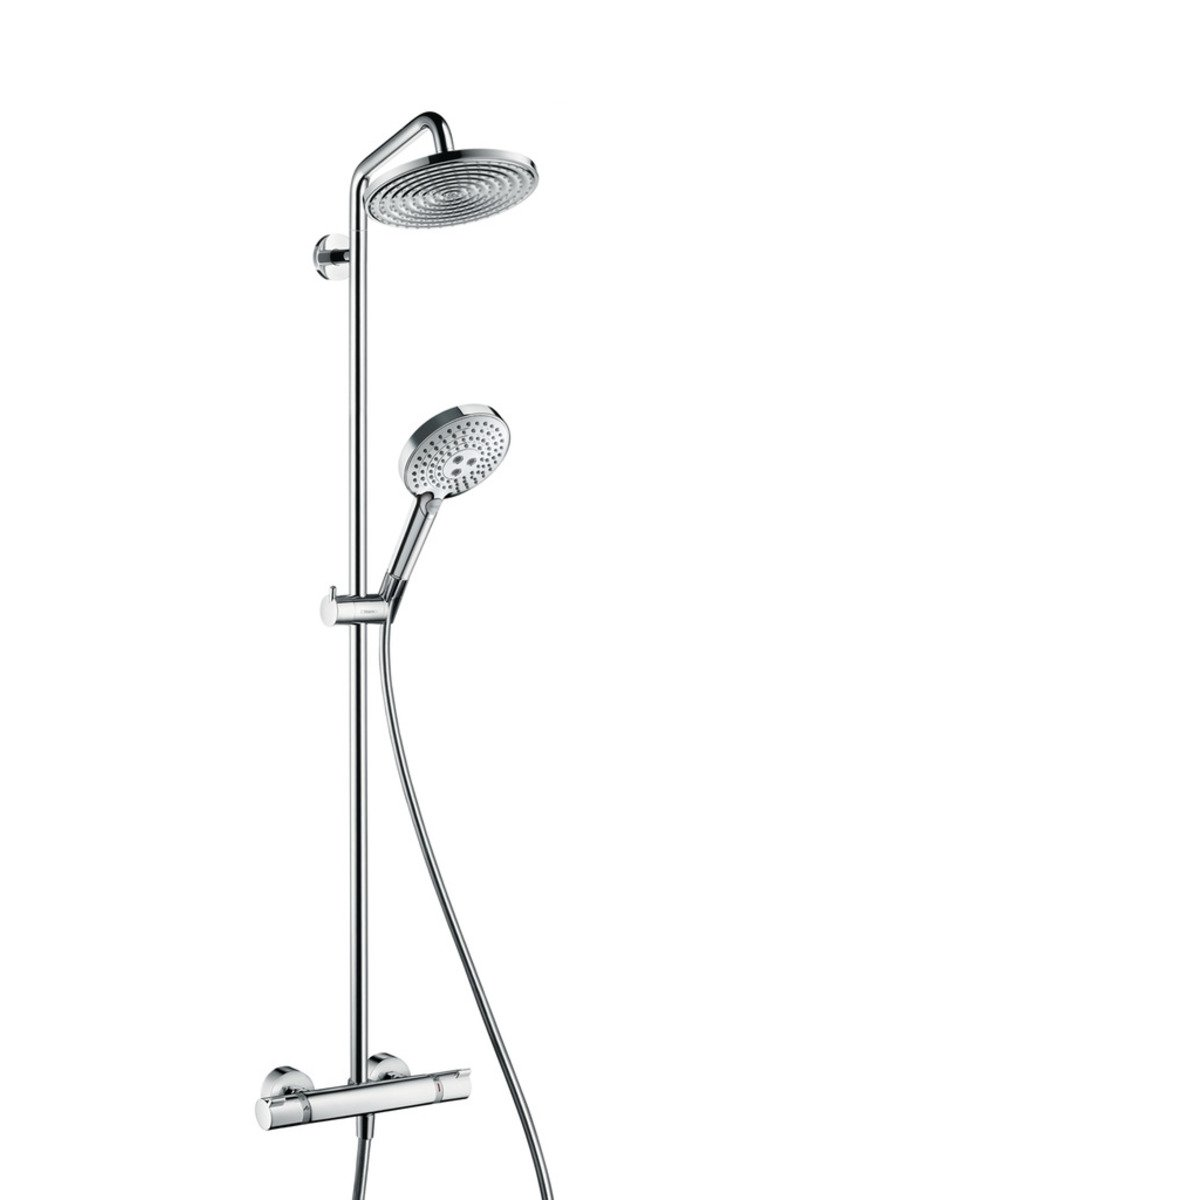 hansgrohe showerpipe raindance select s 240 1jet chrom 27115000. Black Bedroom Furniture Sets. Home Design Ideas